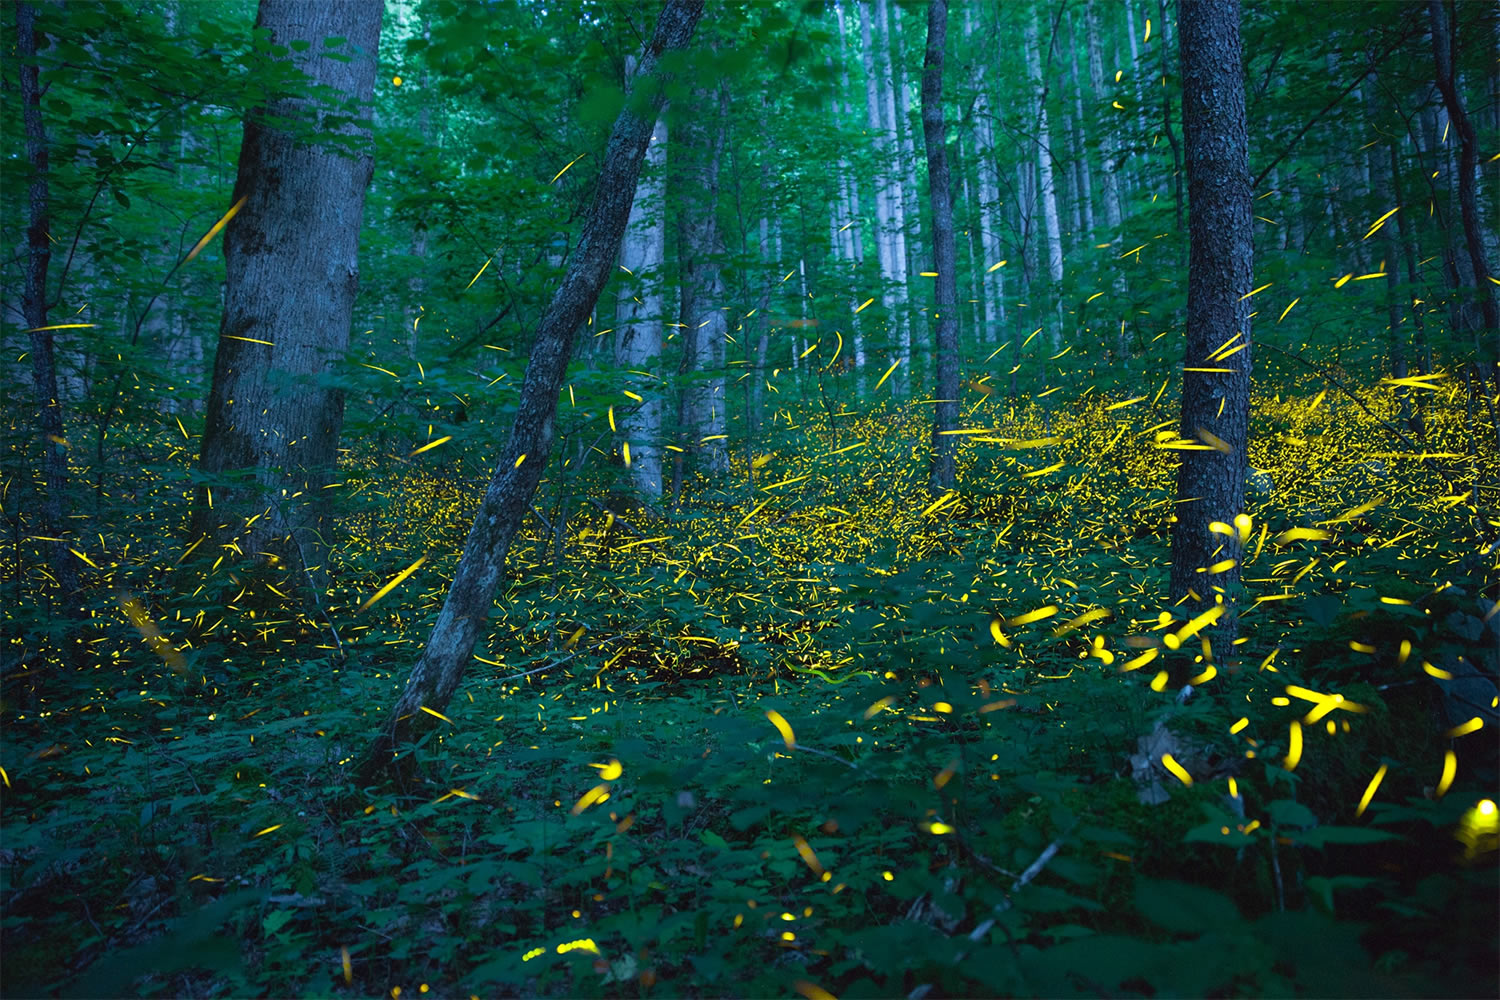 Fireflies in the Smokies, photo by jack hynes